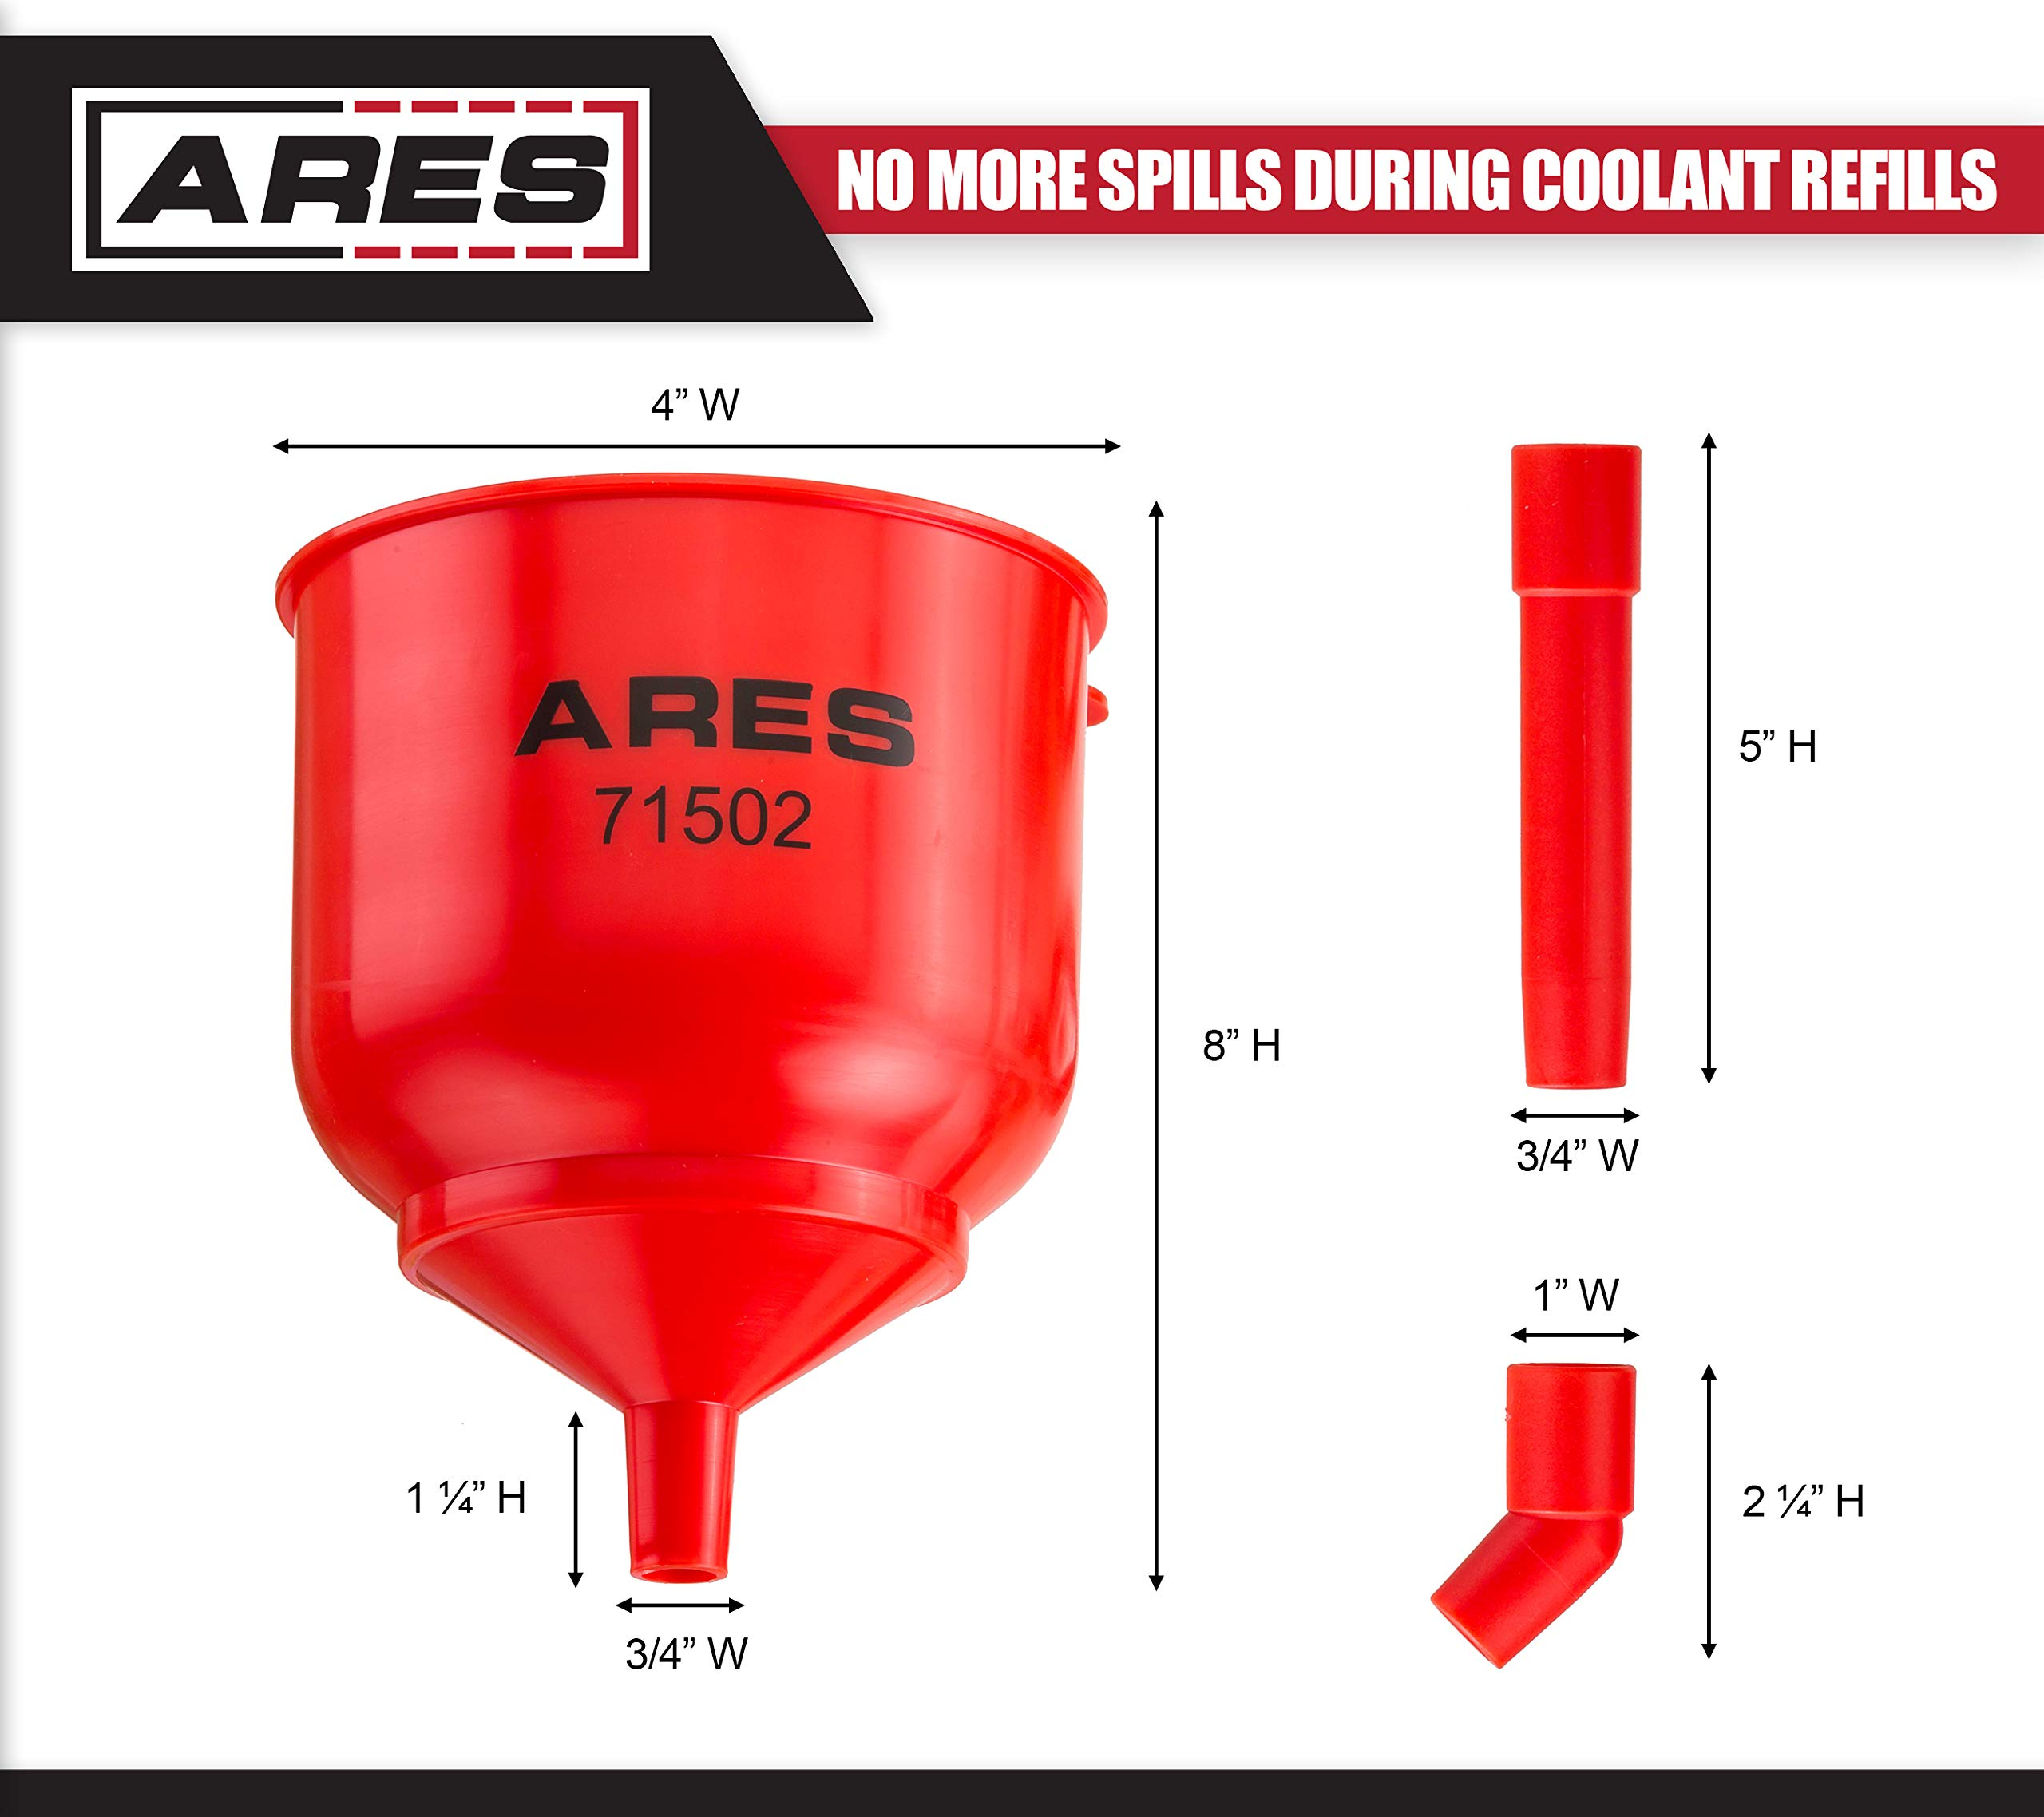 ARES 71502 | Spill Proof Coolant Filling Kit | Eliminates Trapped Air Pockets and Squeaky Belts Due to Overflow by ARES (Image #4)